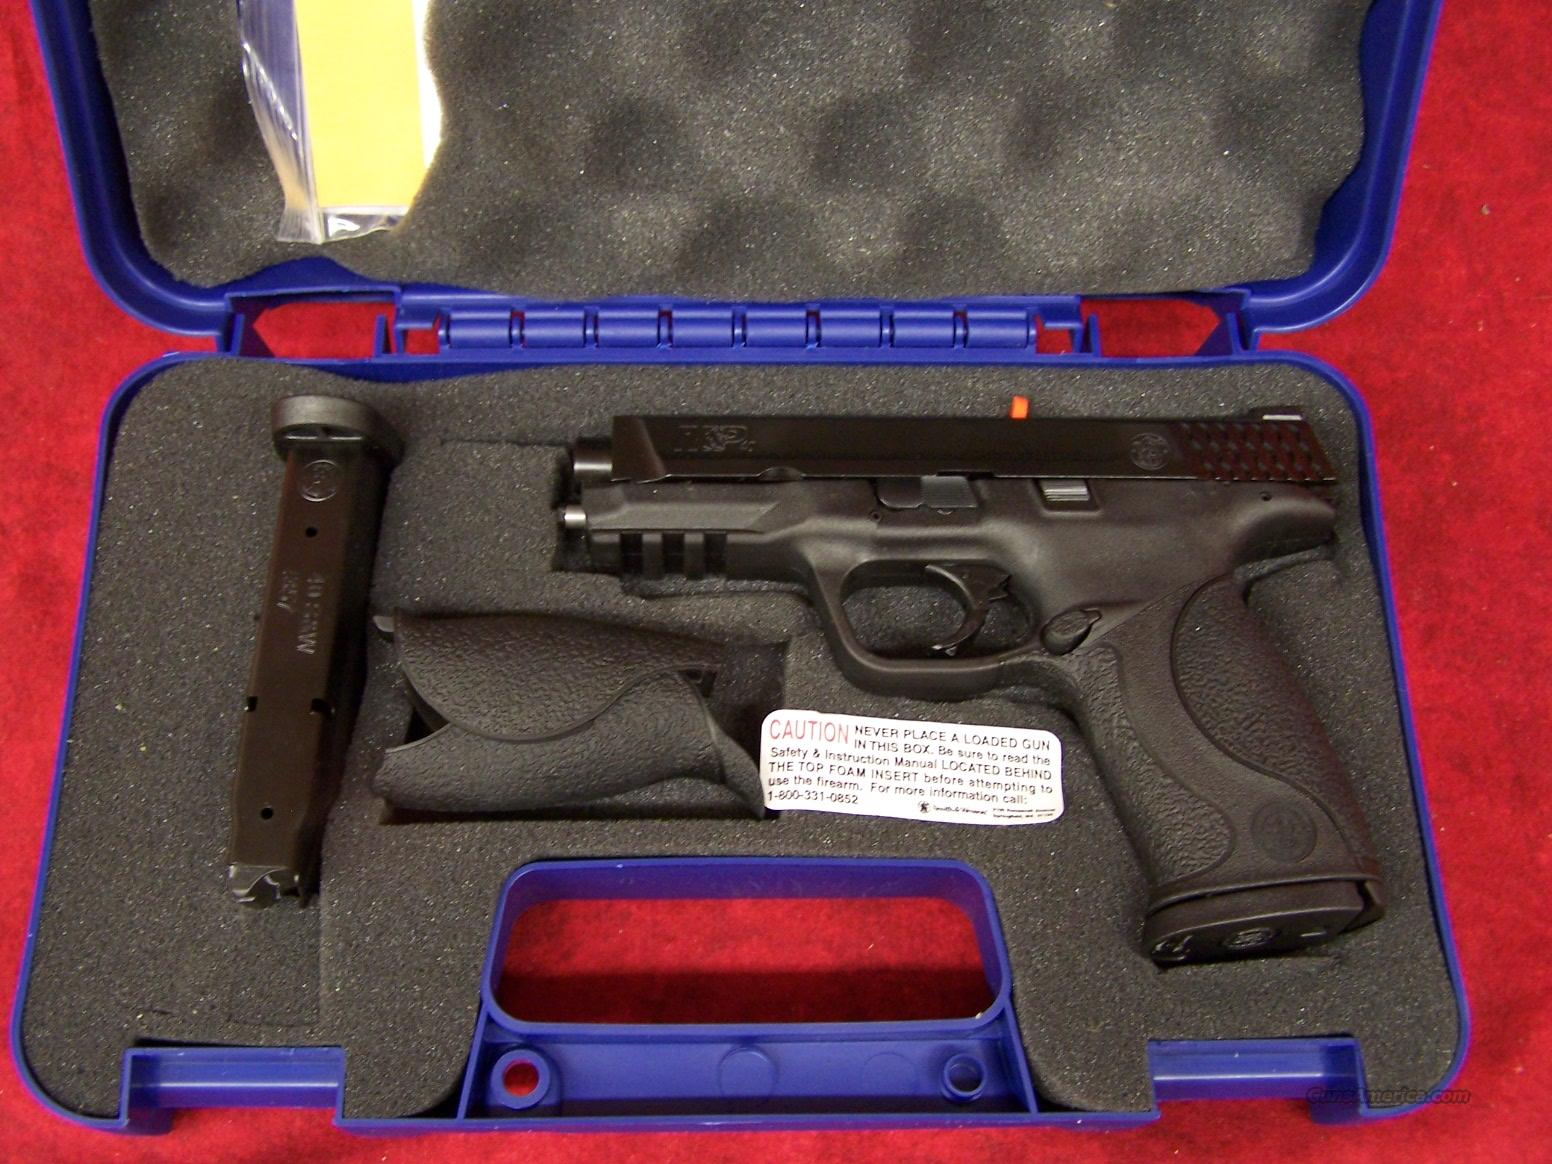 Smith & Wesson M&P 40 No Thumb Safety 40S&W(209300)  Guns > Pistols > Smith & Wesson Pistols - Autos > Polymer Frame